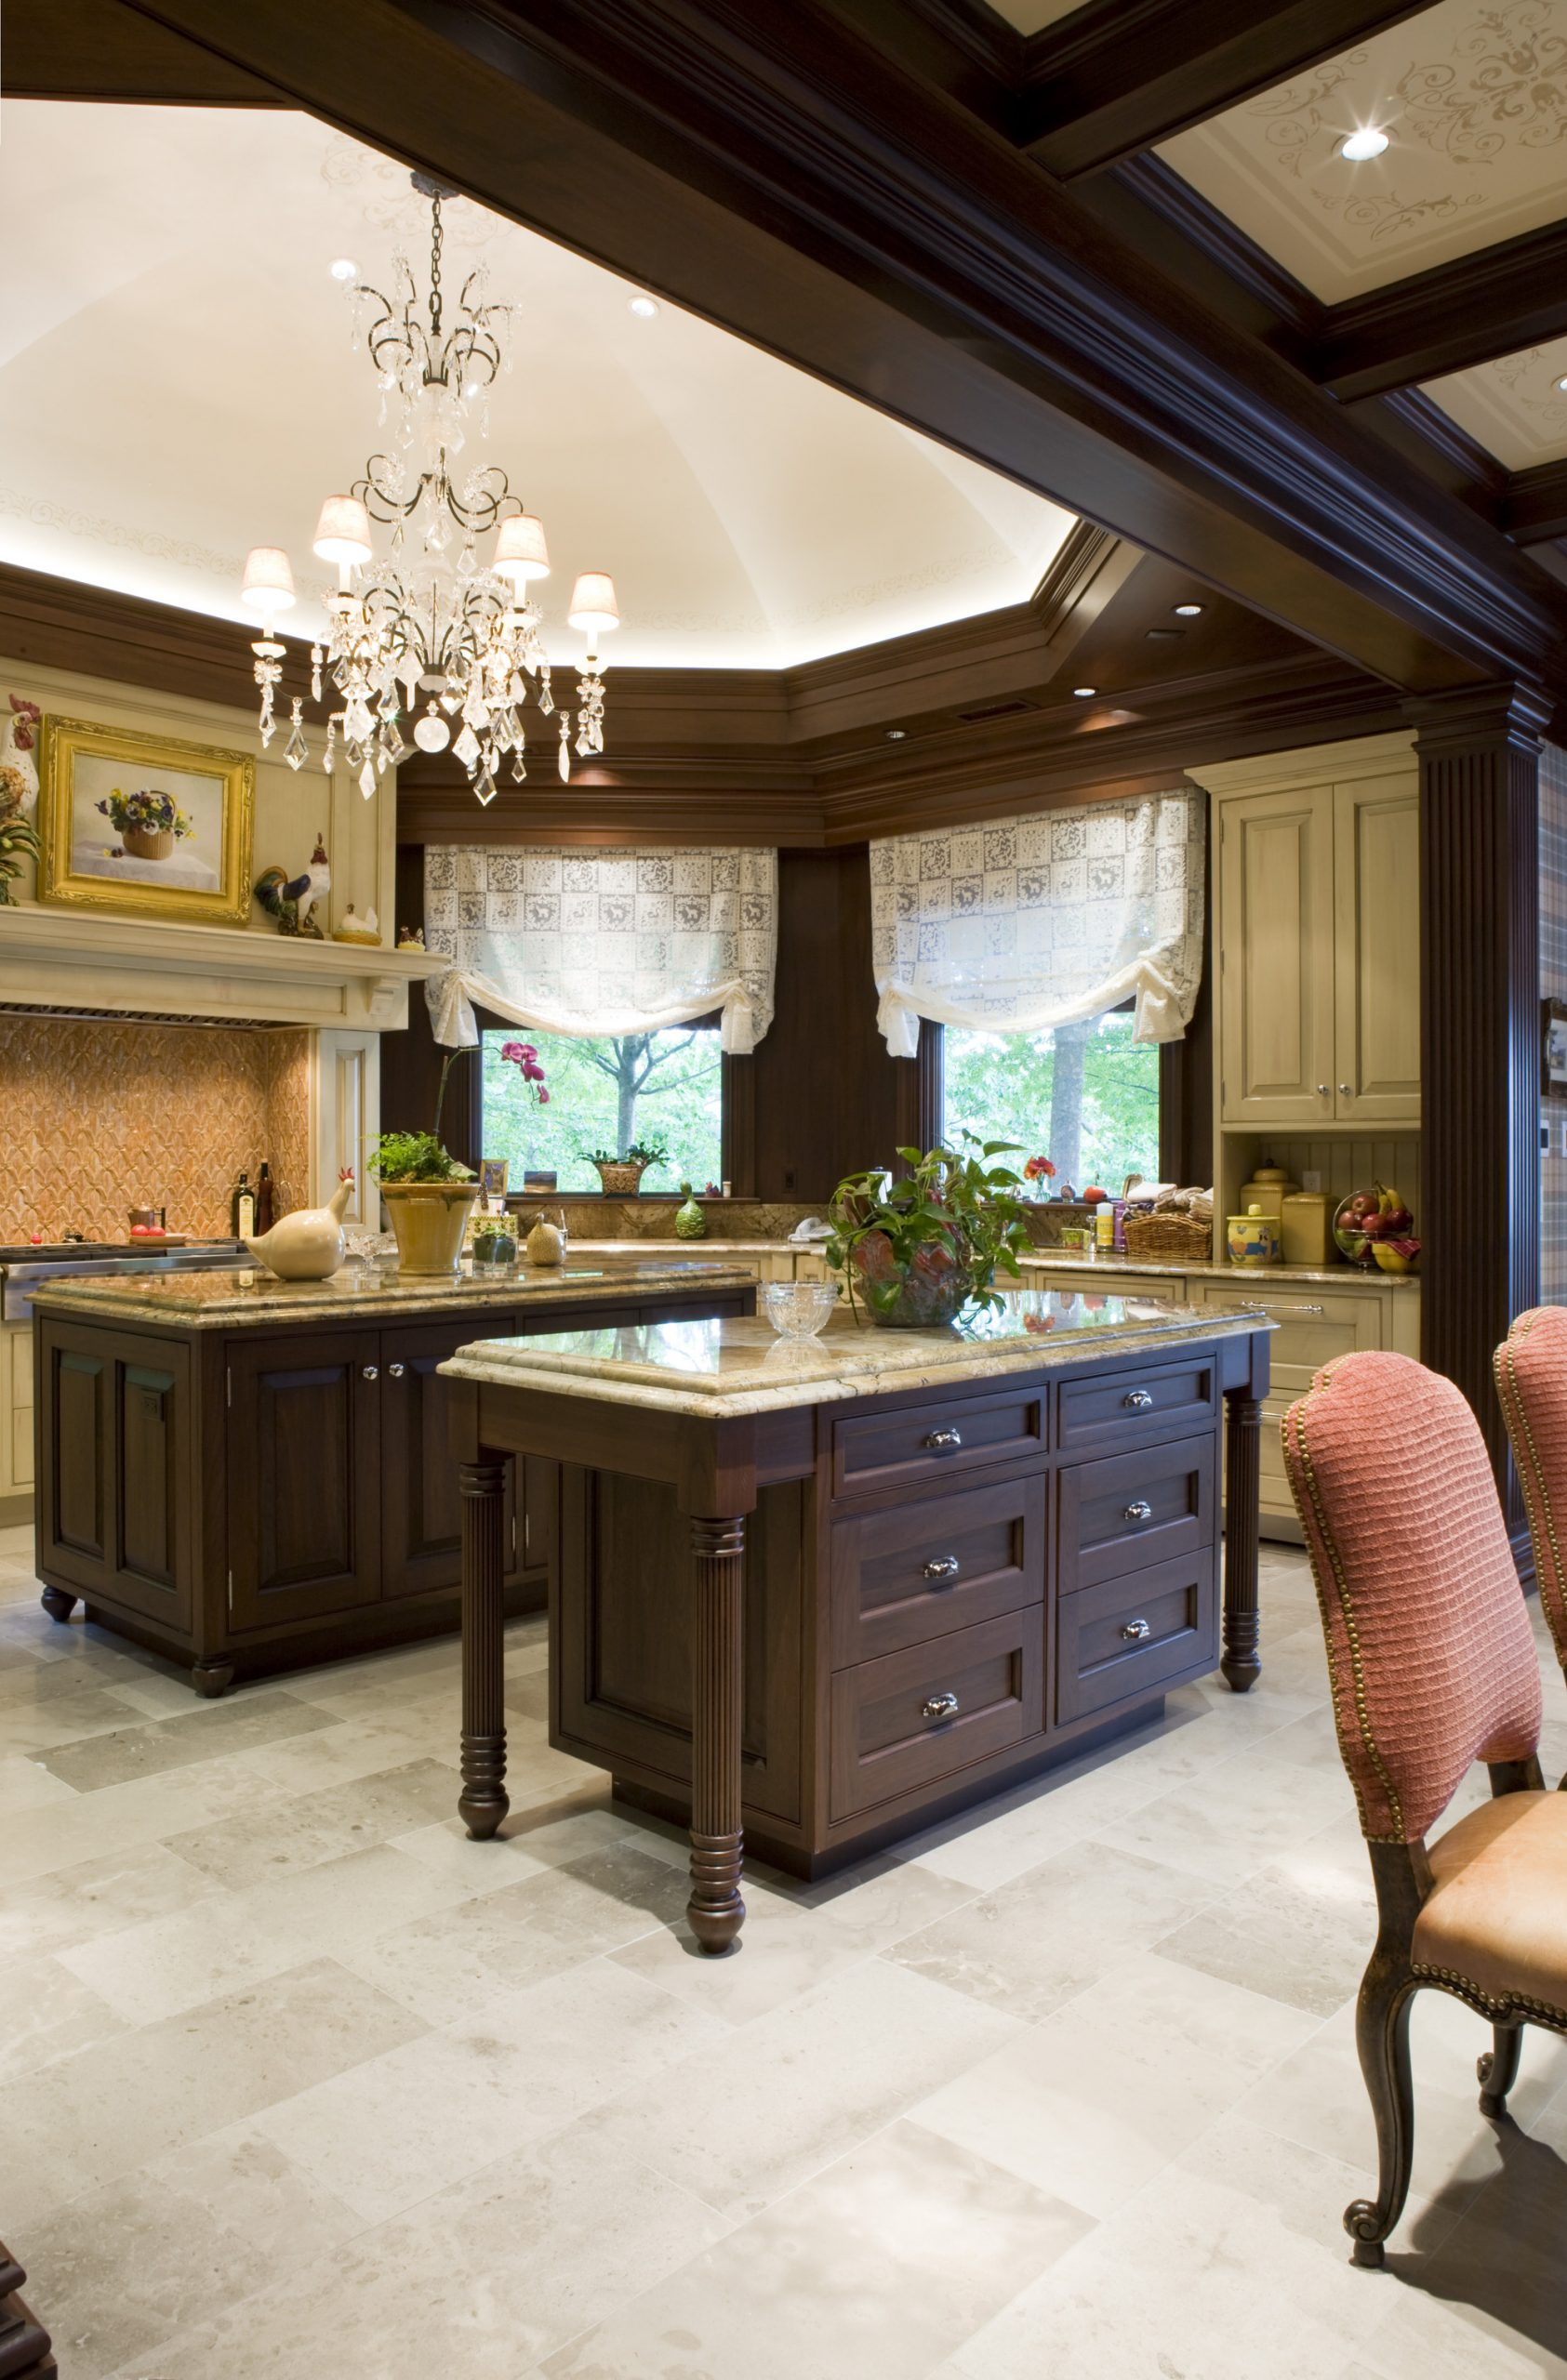 Manganaro, A&M- Kitchen- Greenfield- Traditional- Stain- Two Island w Ceiling